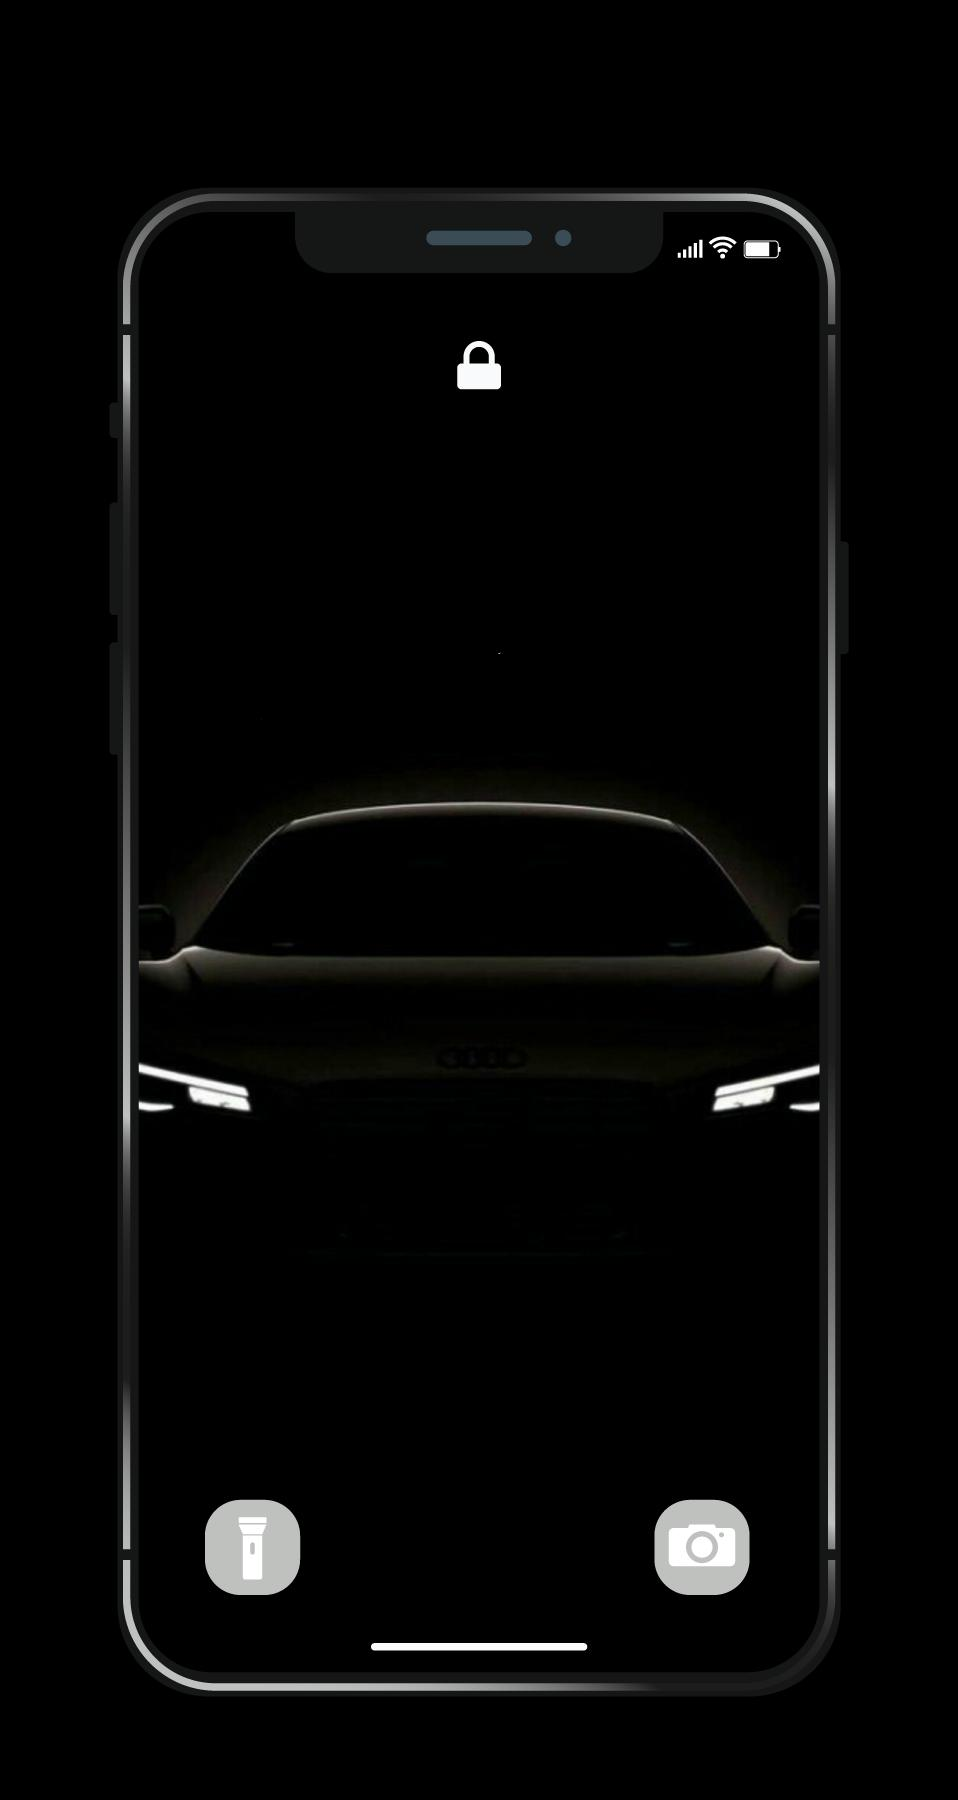 Wallpapers For Audi 4k Hd Audi Cars Wallpaper For Android Apk Download